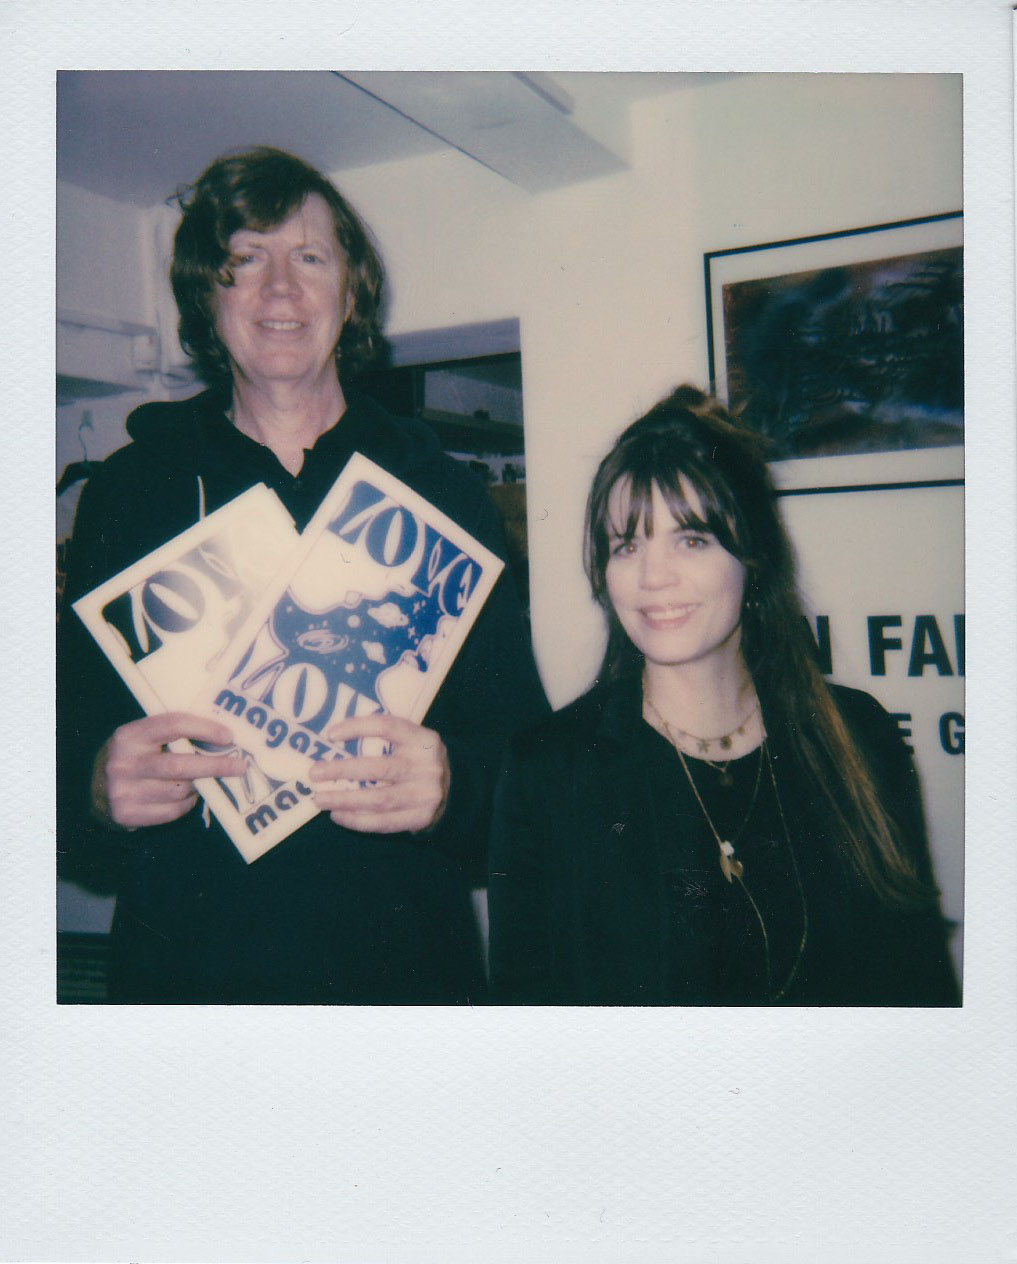 Thurston Moore & Lisa Marie, February 2020, London